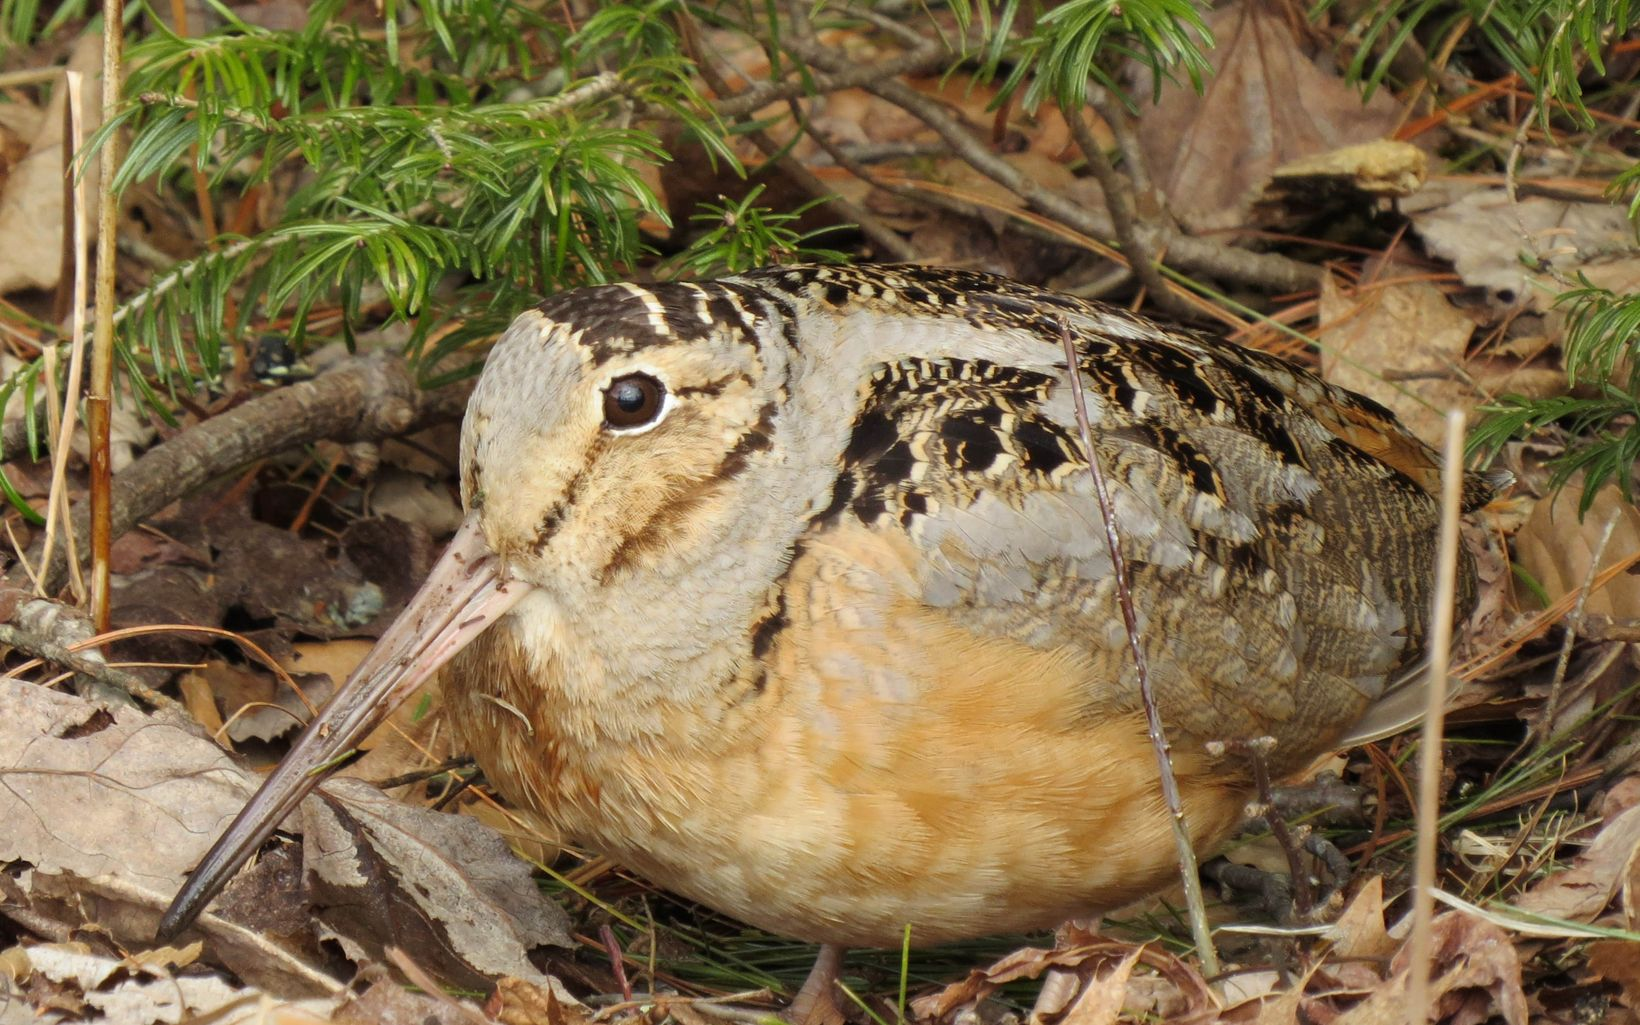 A brown bird rests on the forest floor.